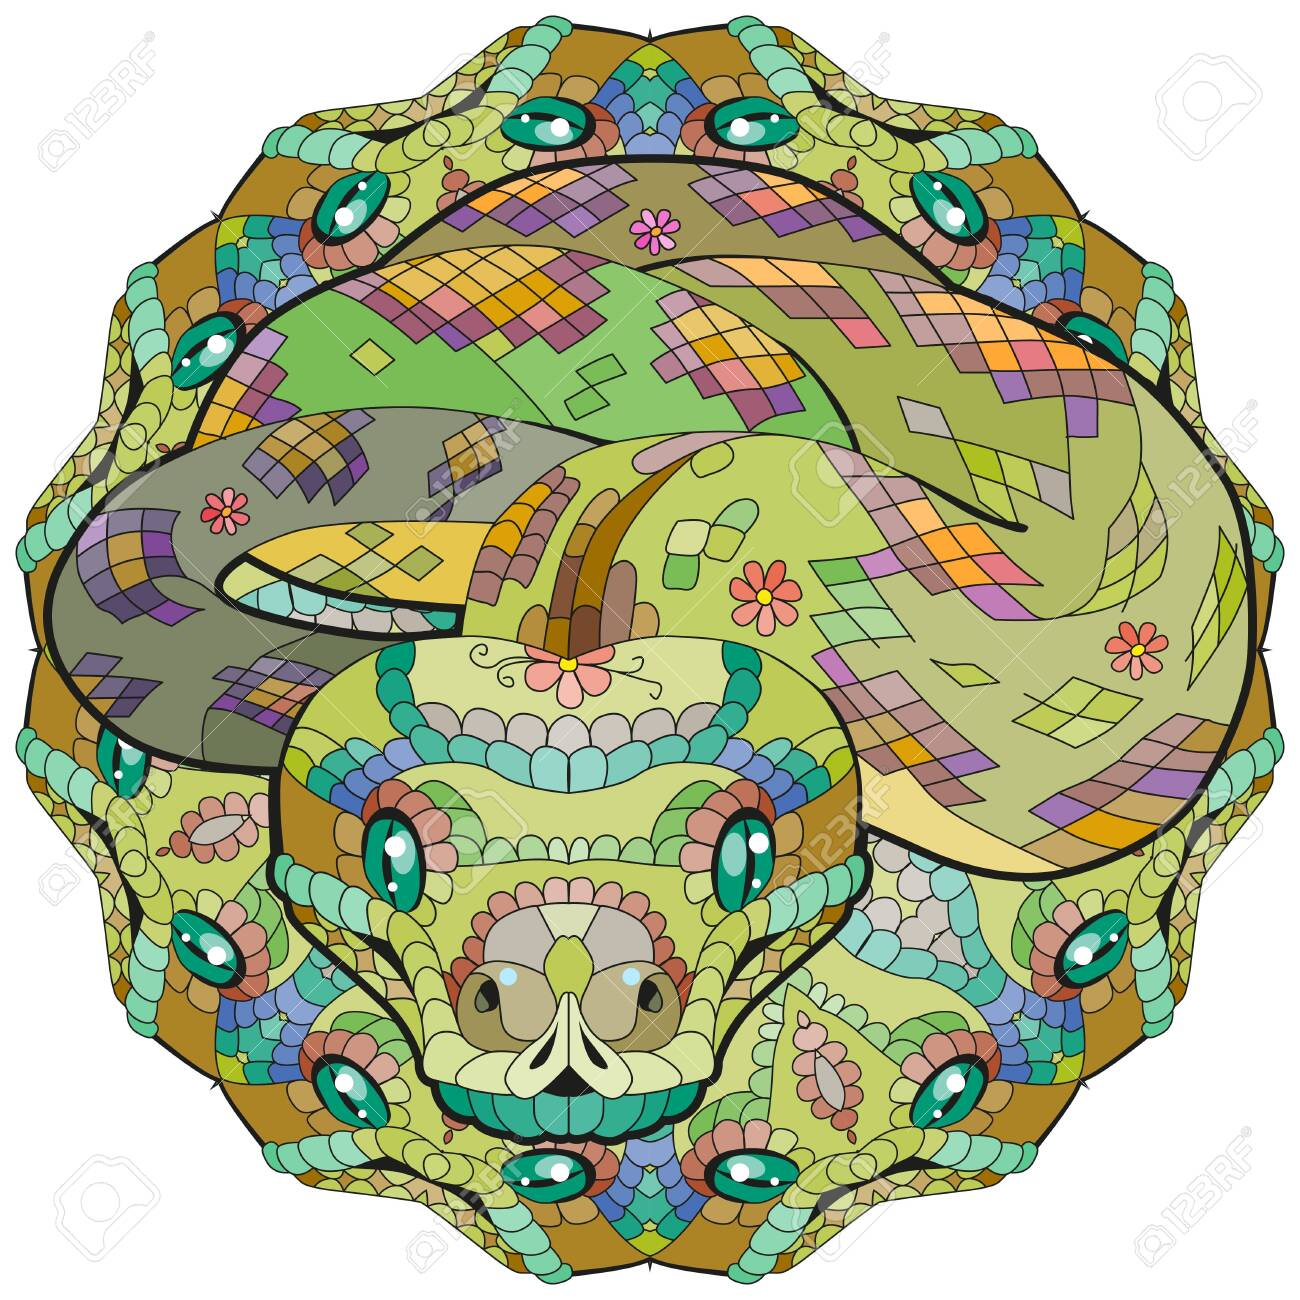 Hand drawn snake with mandala for t-shirt and other decorations - 142946424